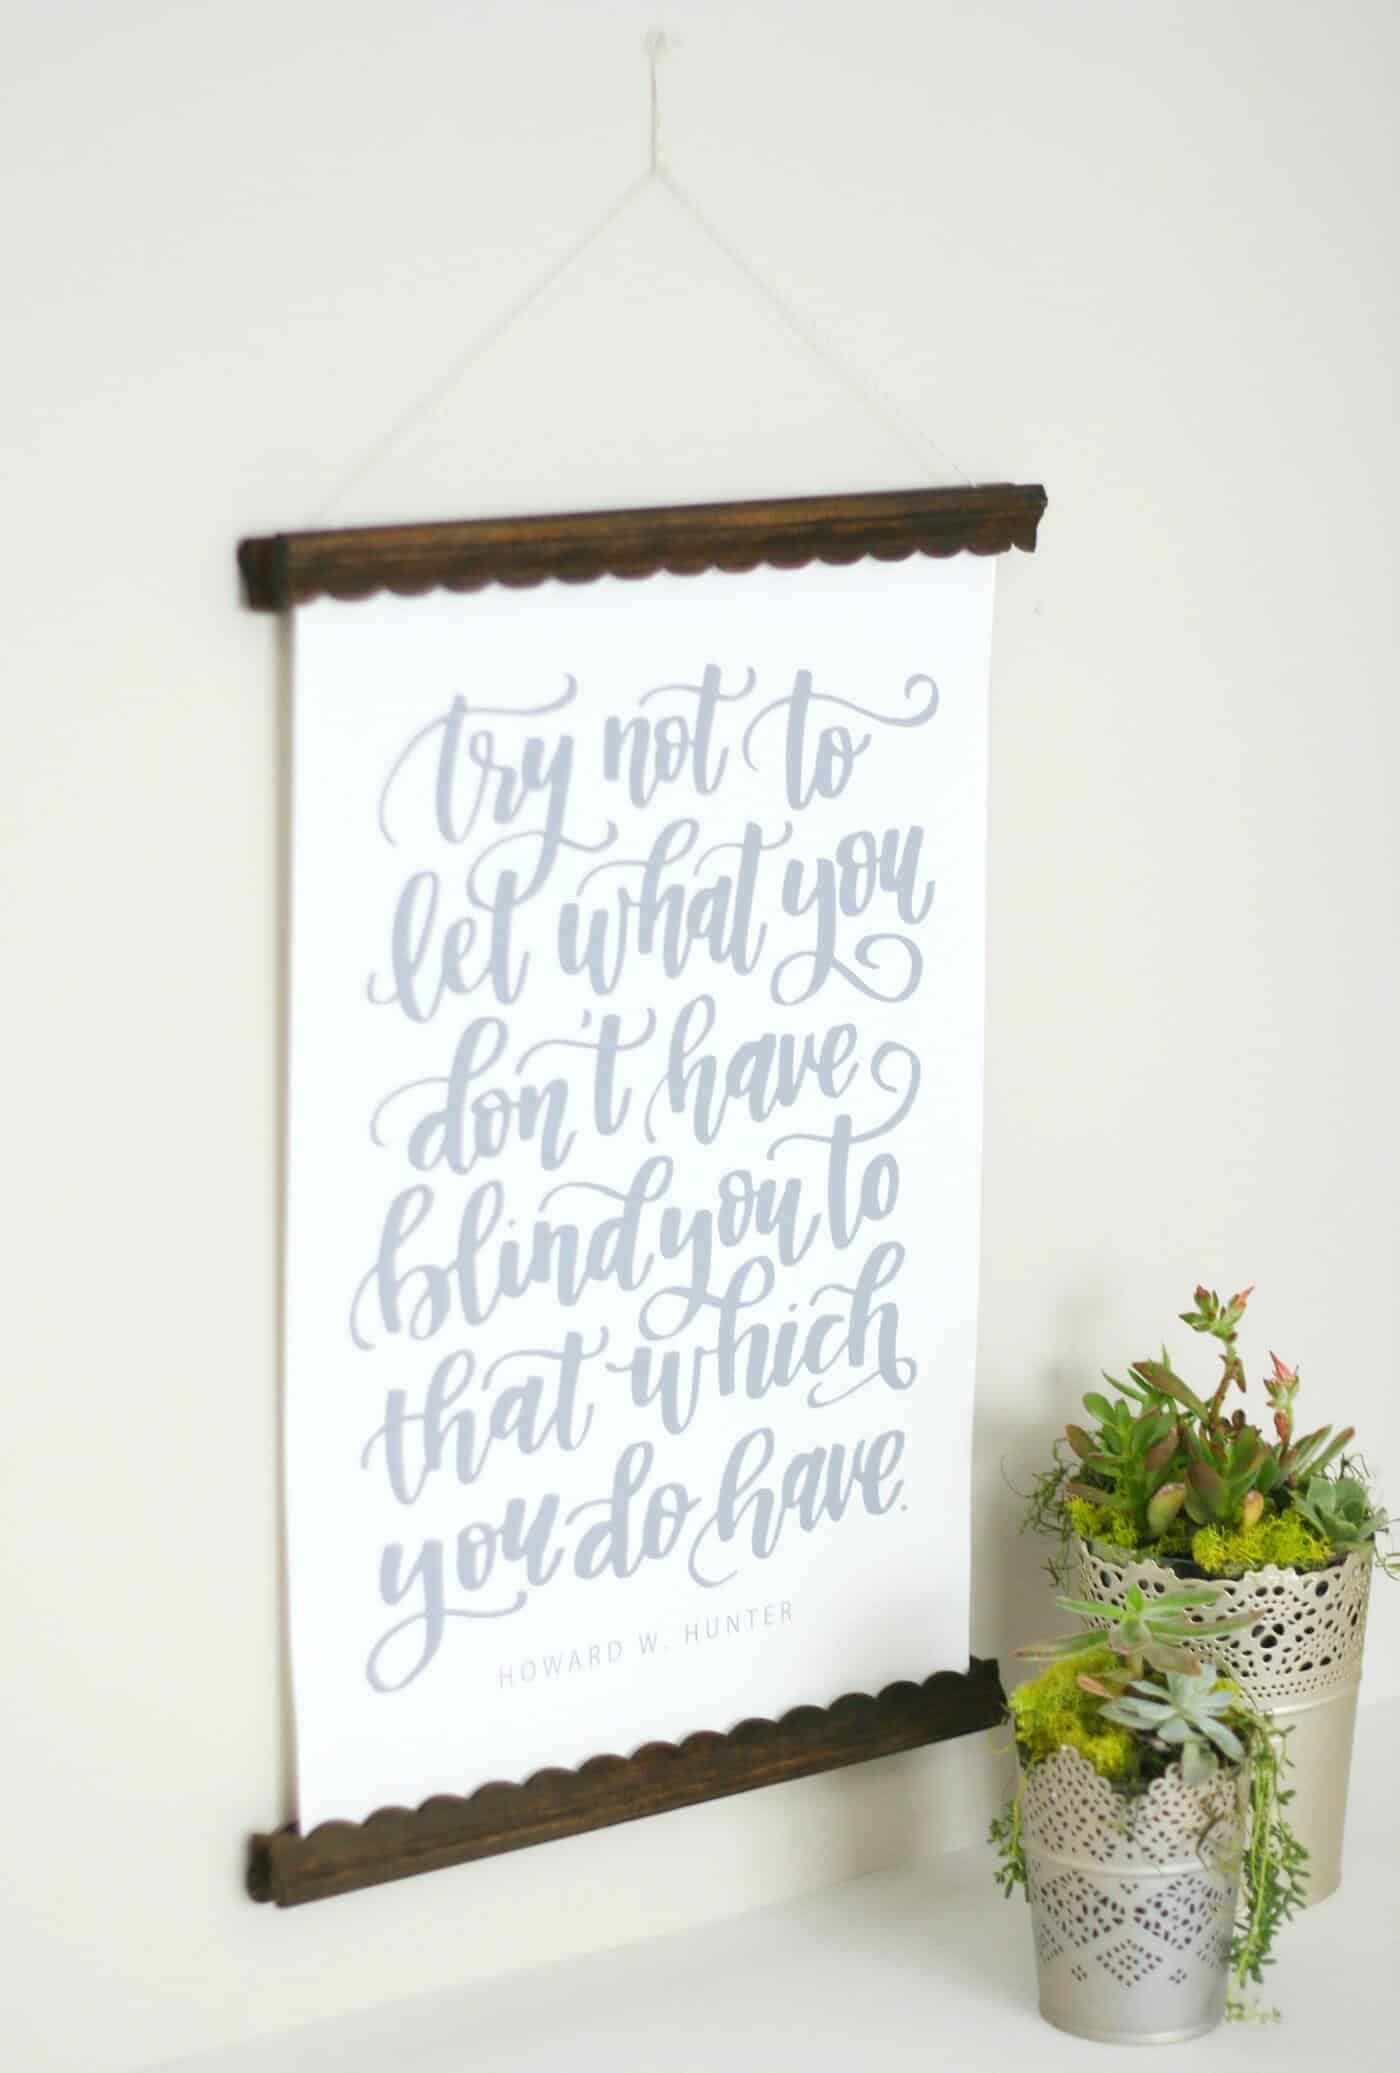 Use scalloped wood trim and magnets to make the most budget friendly poster hanger ever! Get any trim you like and your favorite stain color to customize.